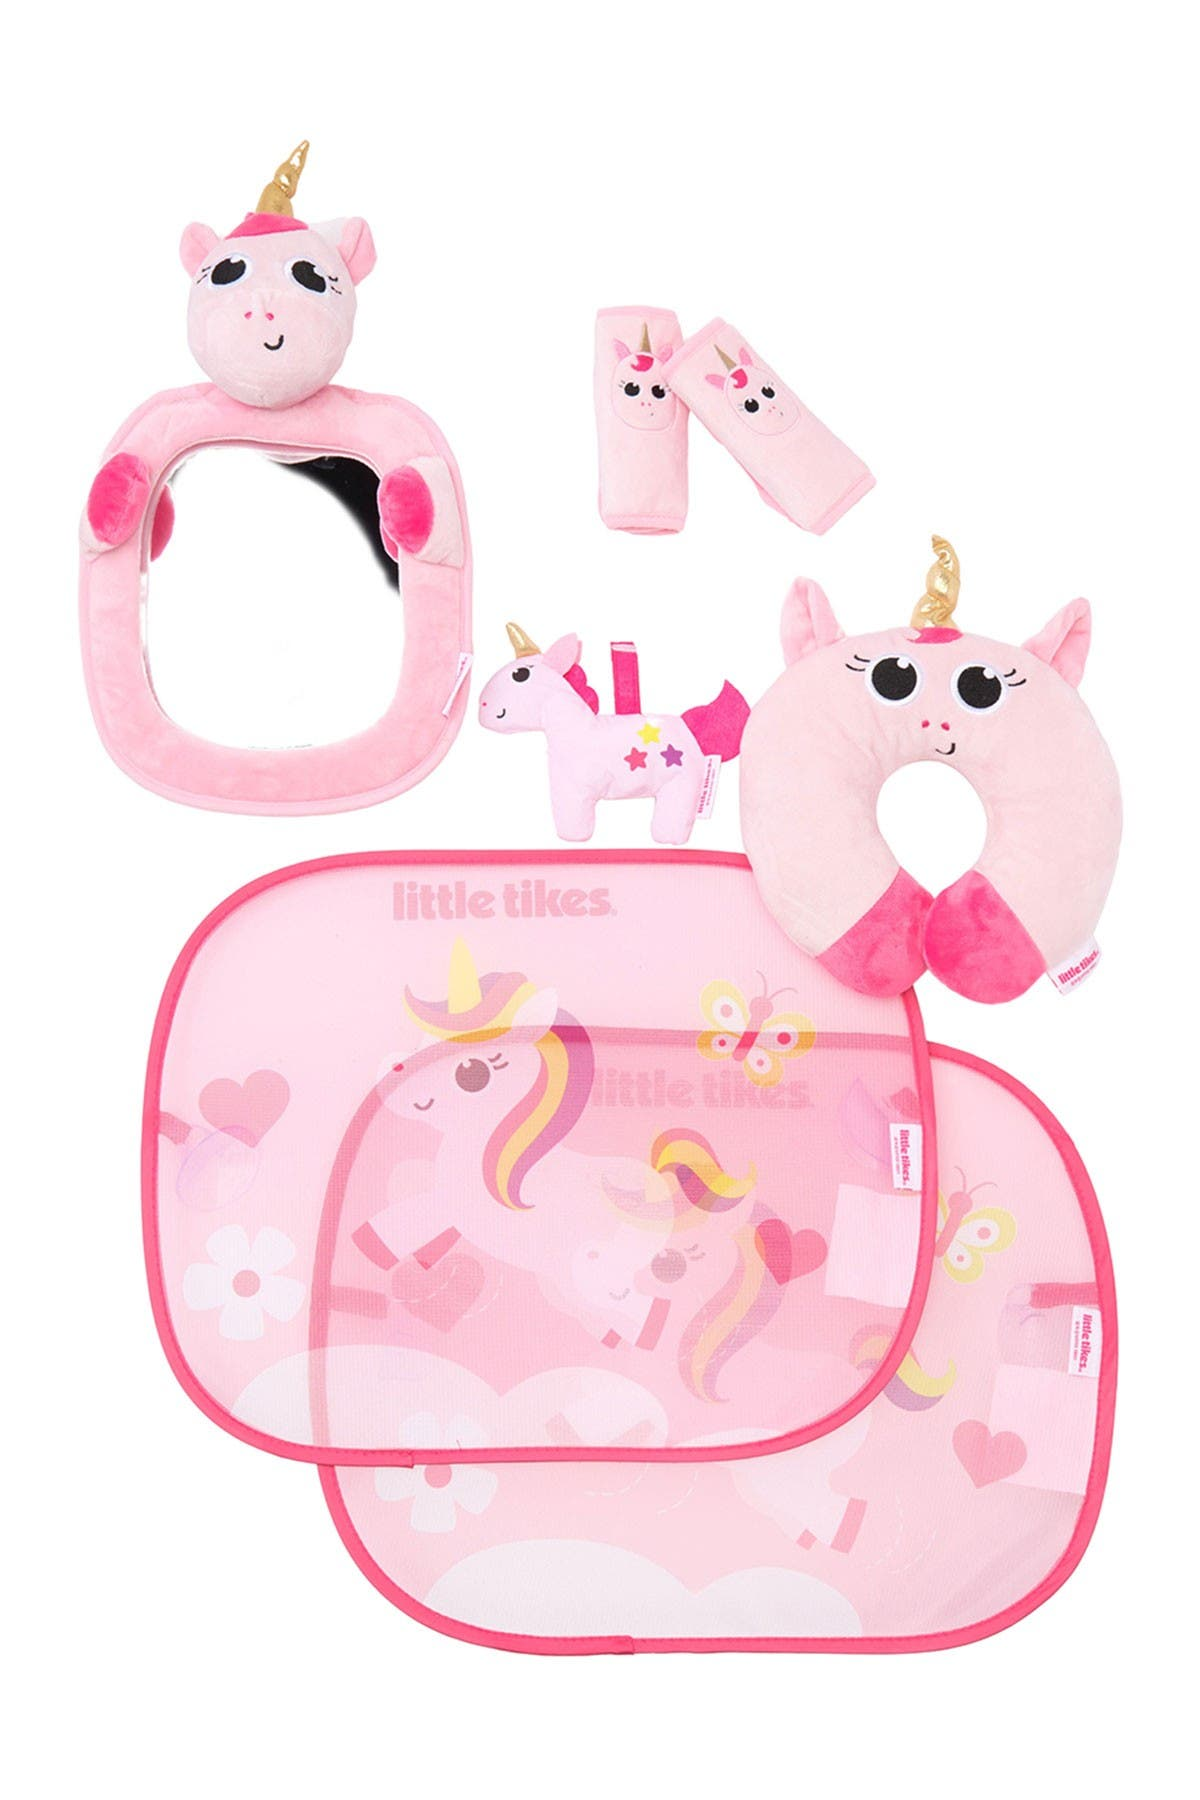 Image of Little Tikes Car Accessory 7-Piece Baby Gift Set - Pink